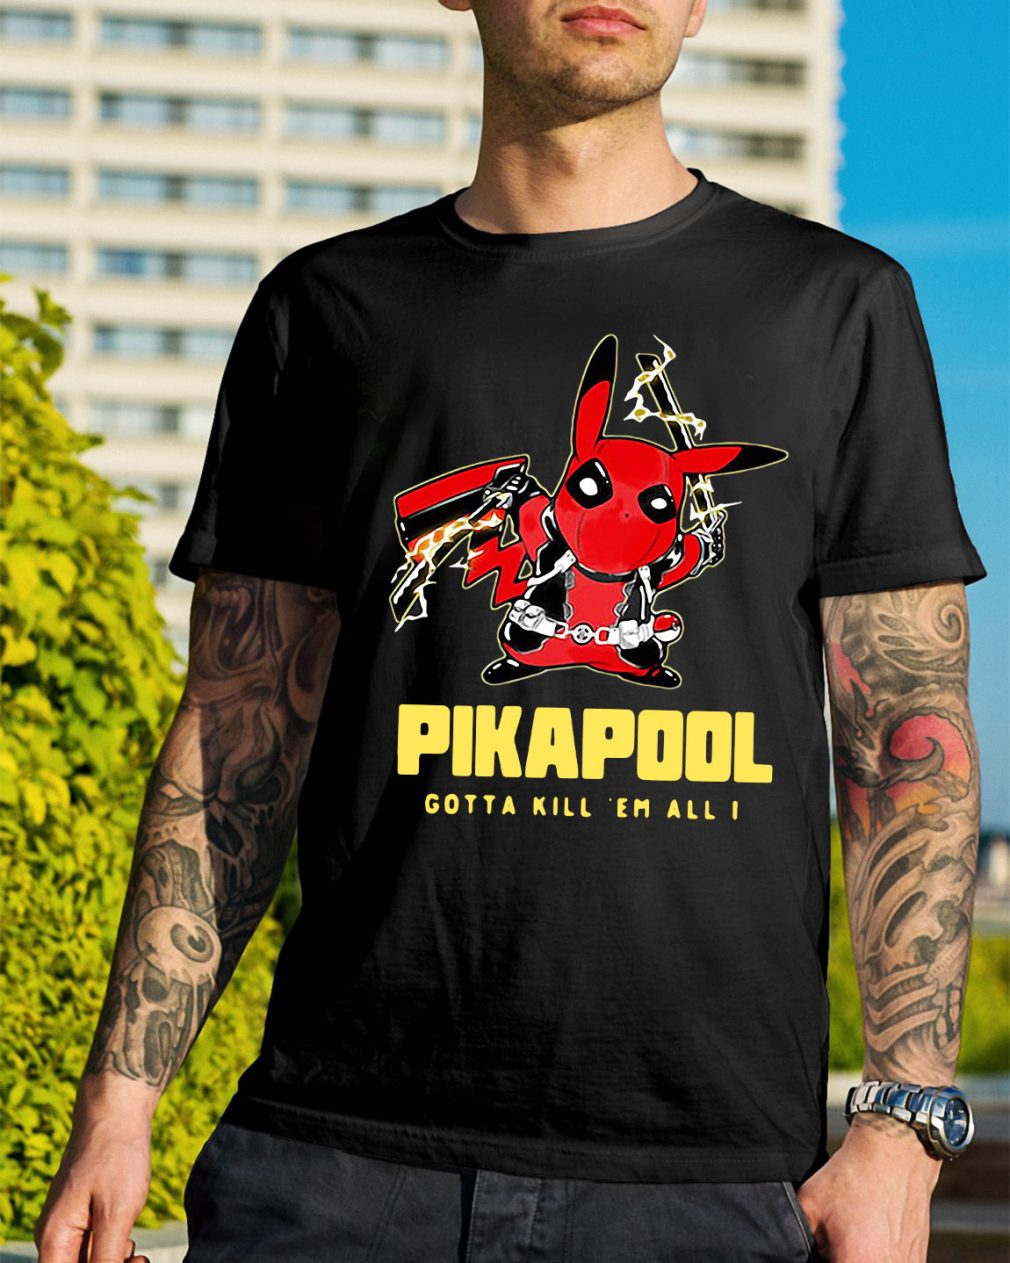 Pikapool gotta kill 'em all I shirt